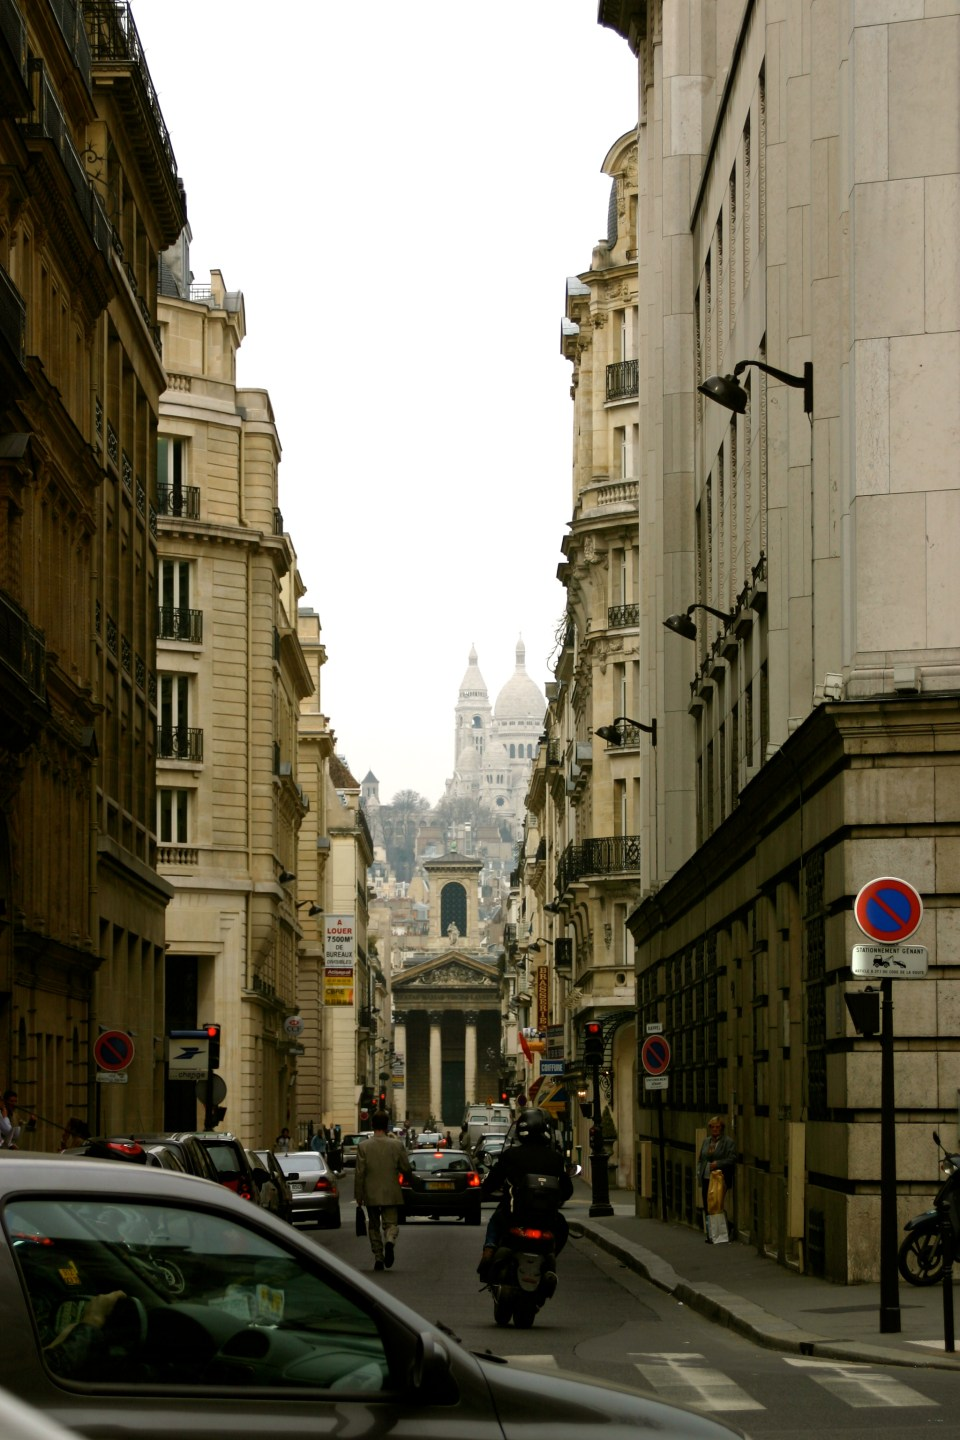 A Street View of Montmartre